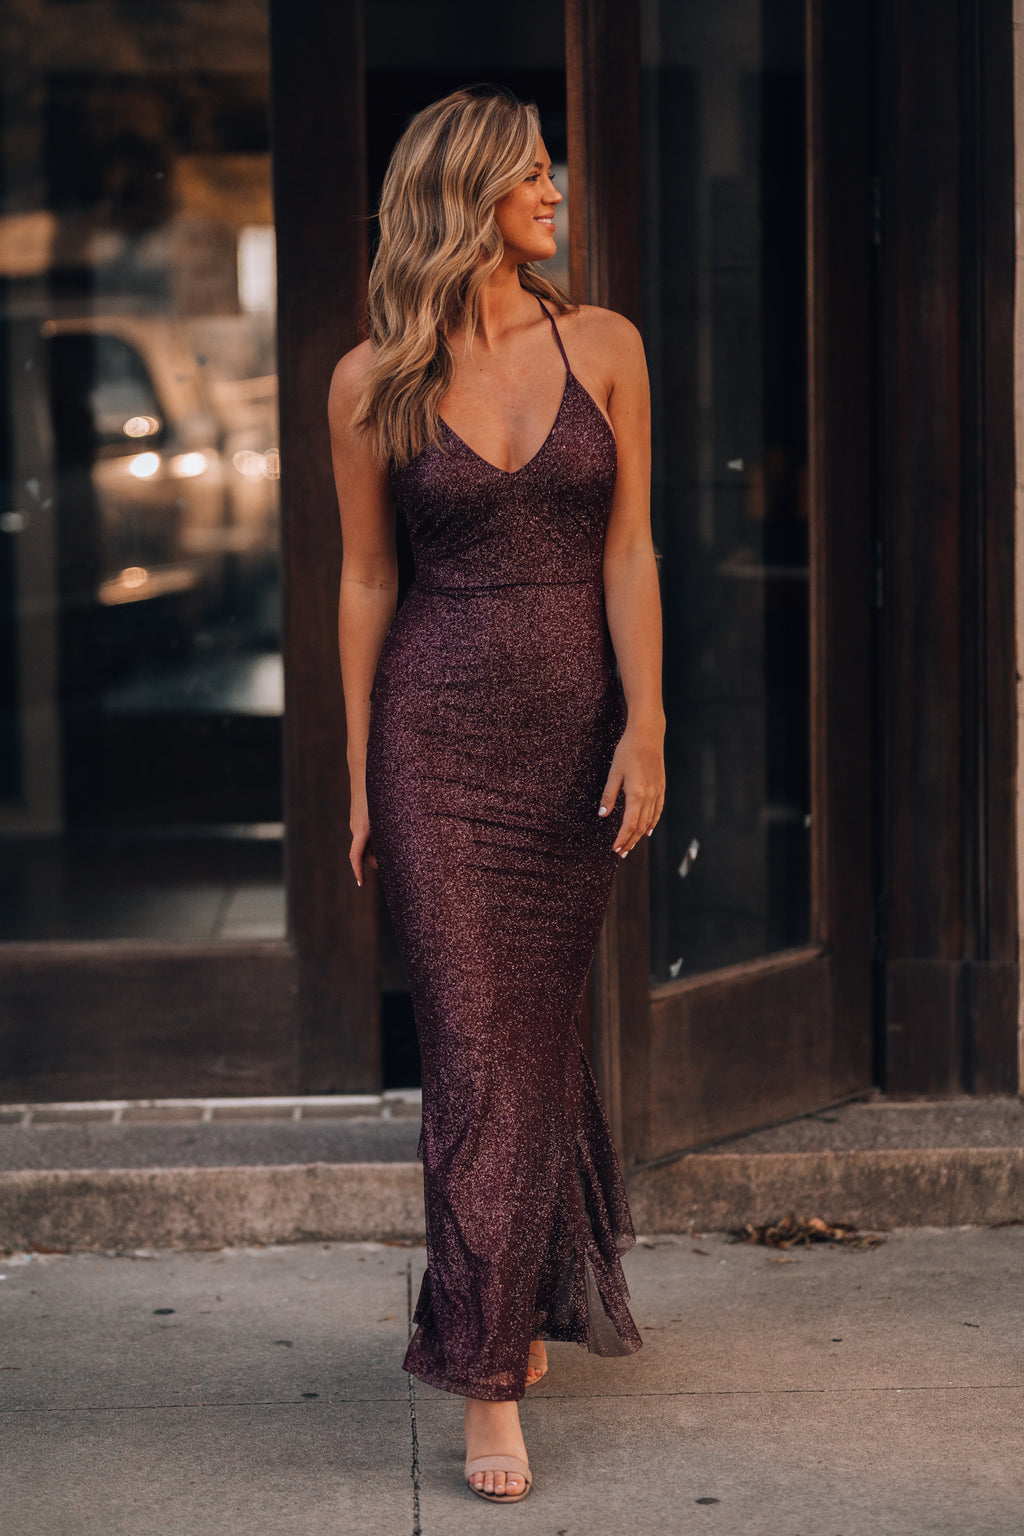 This Is Love Glitter Gown (Merlot) PRE-ORDER Ships Late October